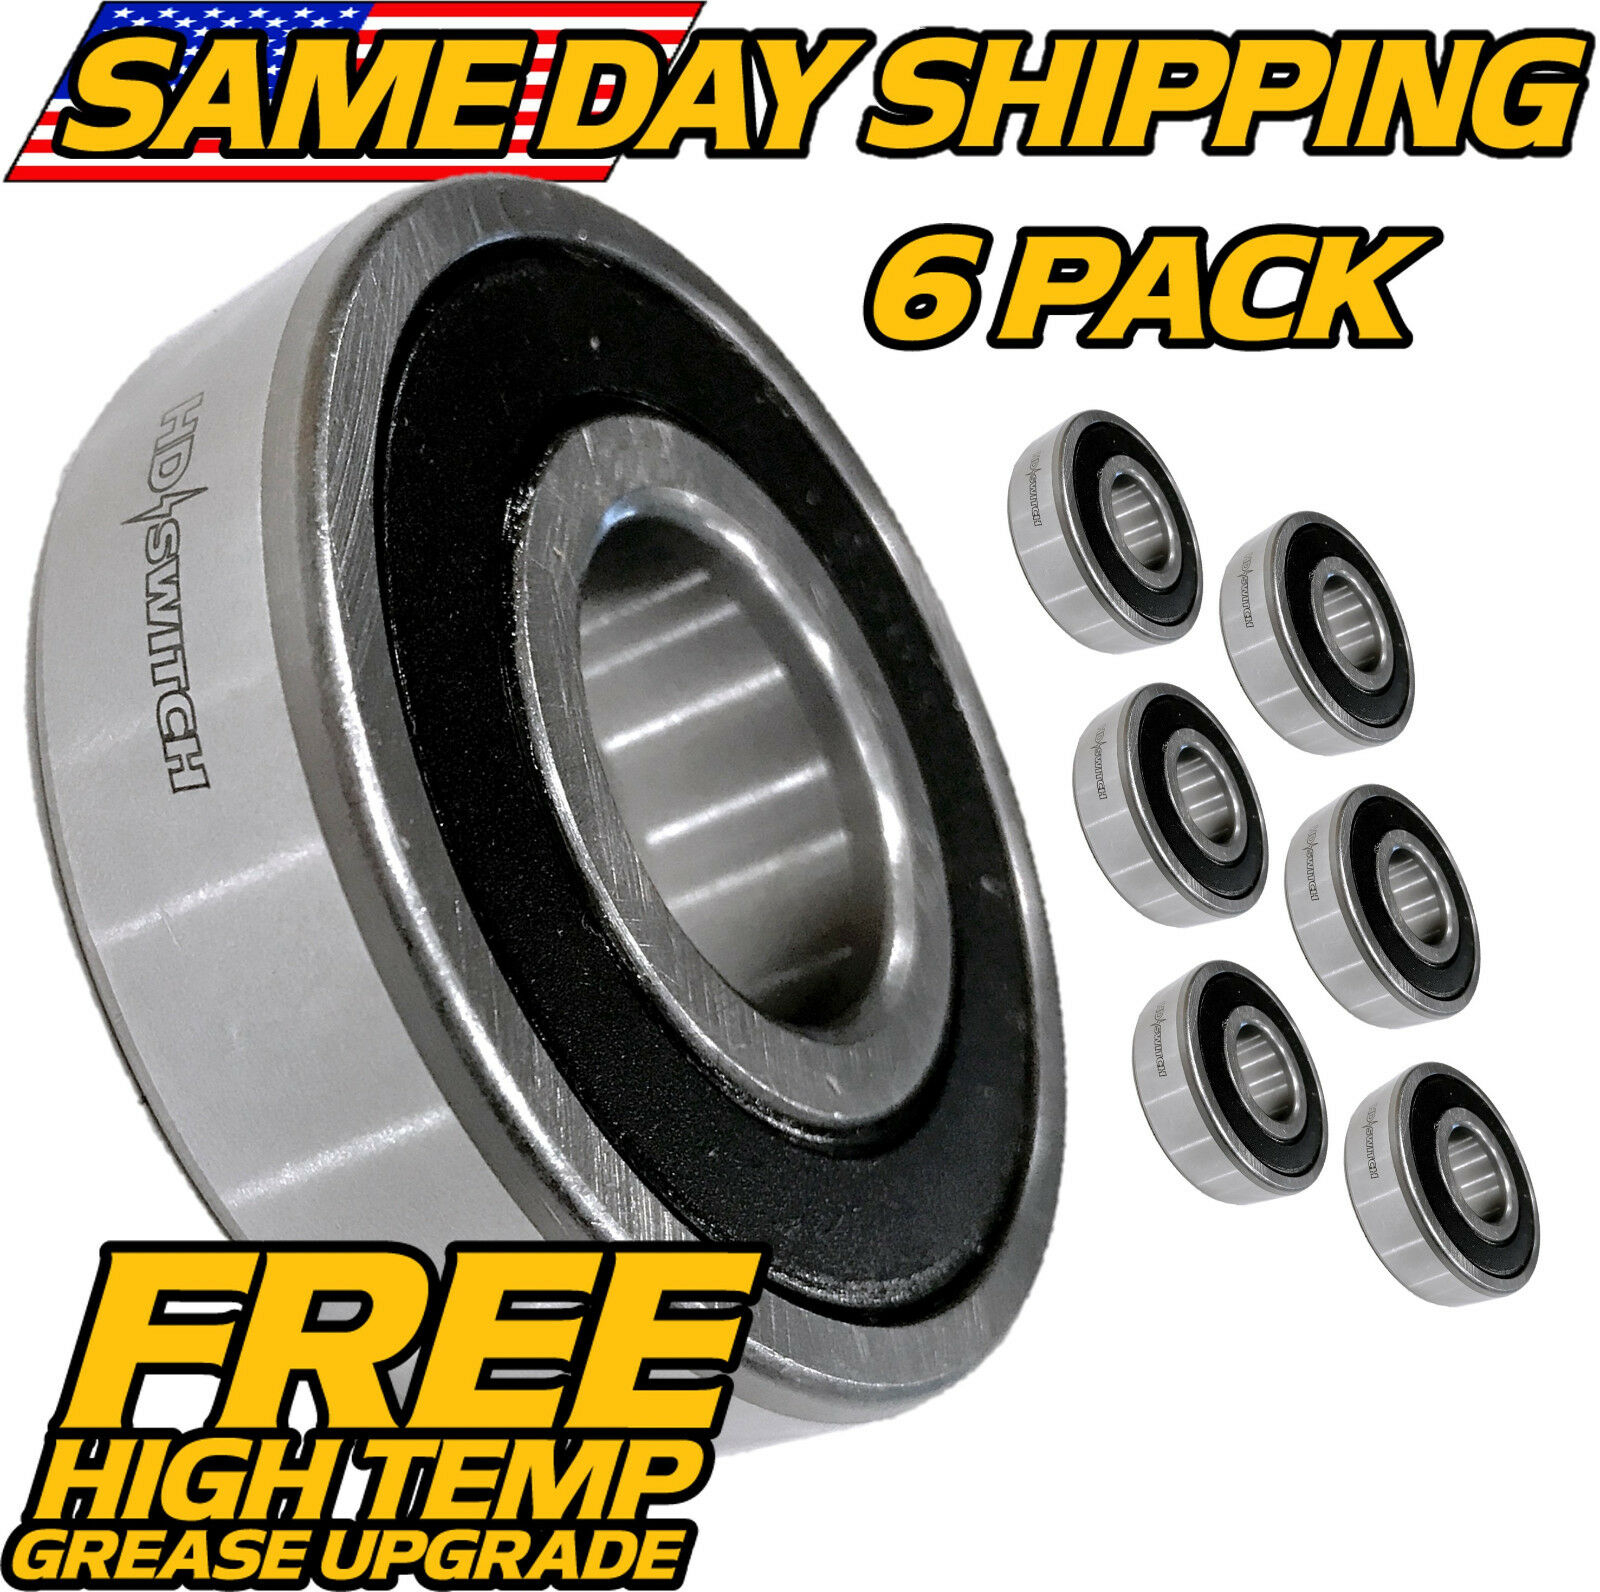 6 Pack Country Clipper Lawn Mower Spindle Bearing C-28971 ZSKL